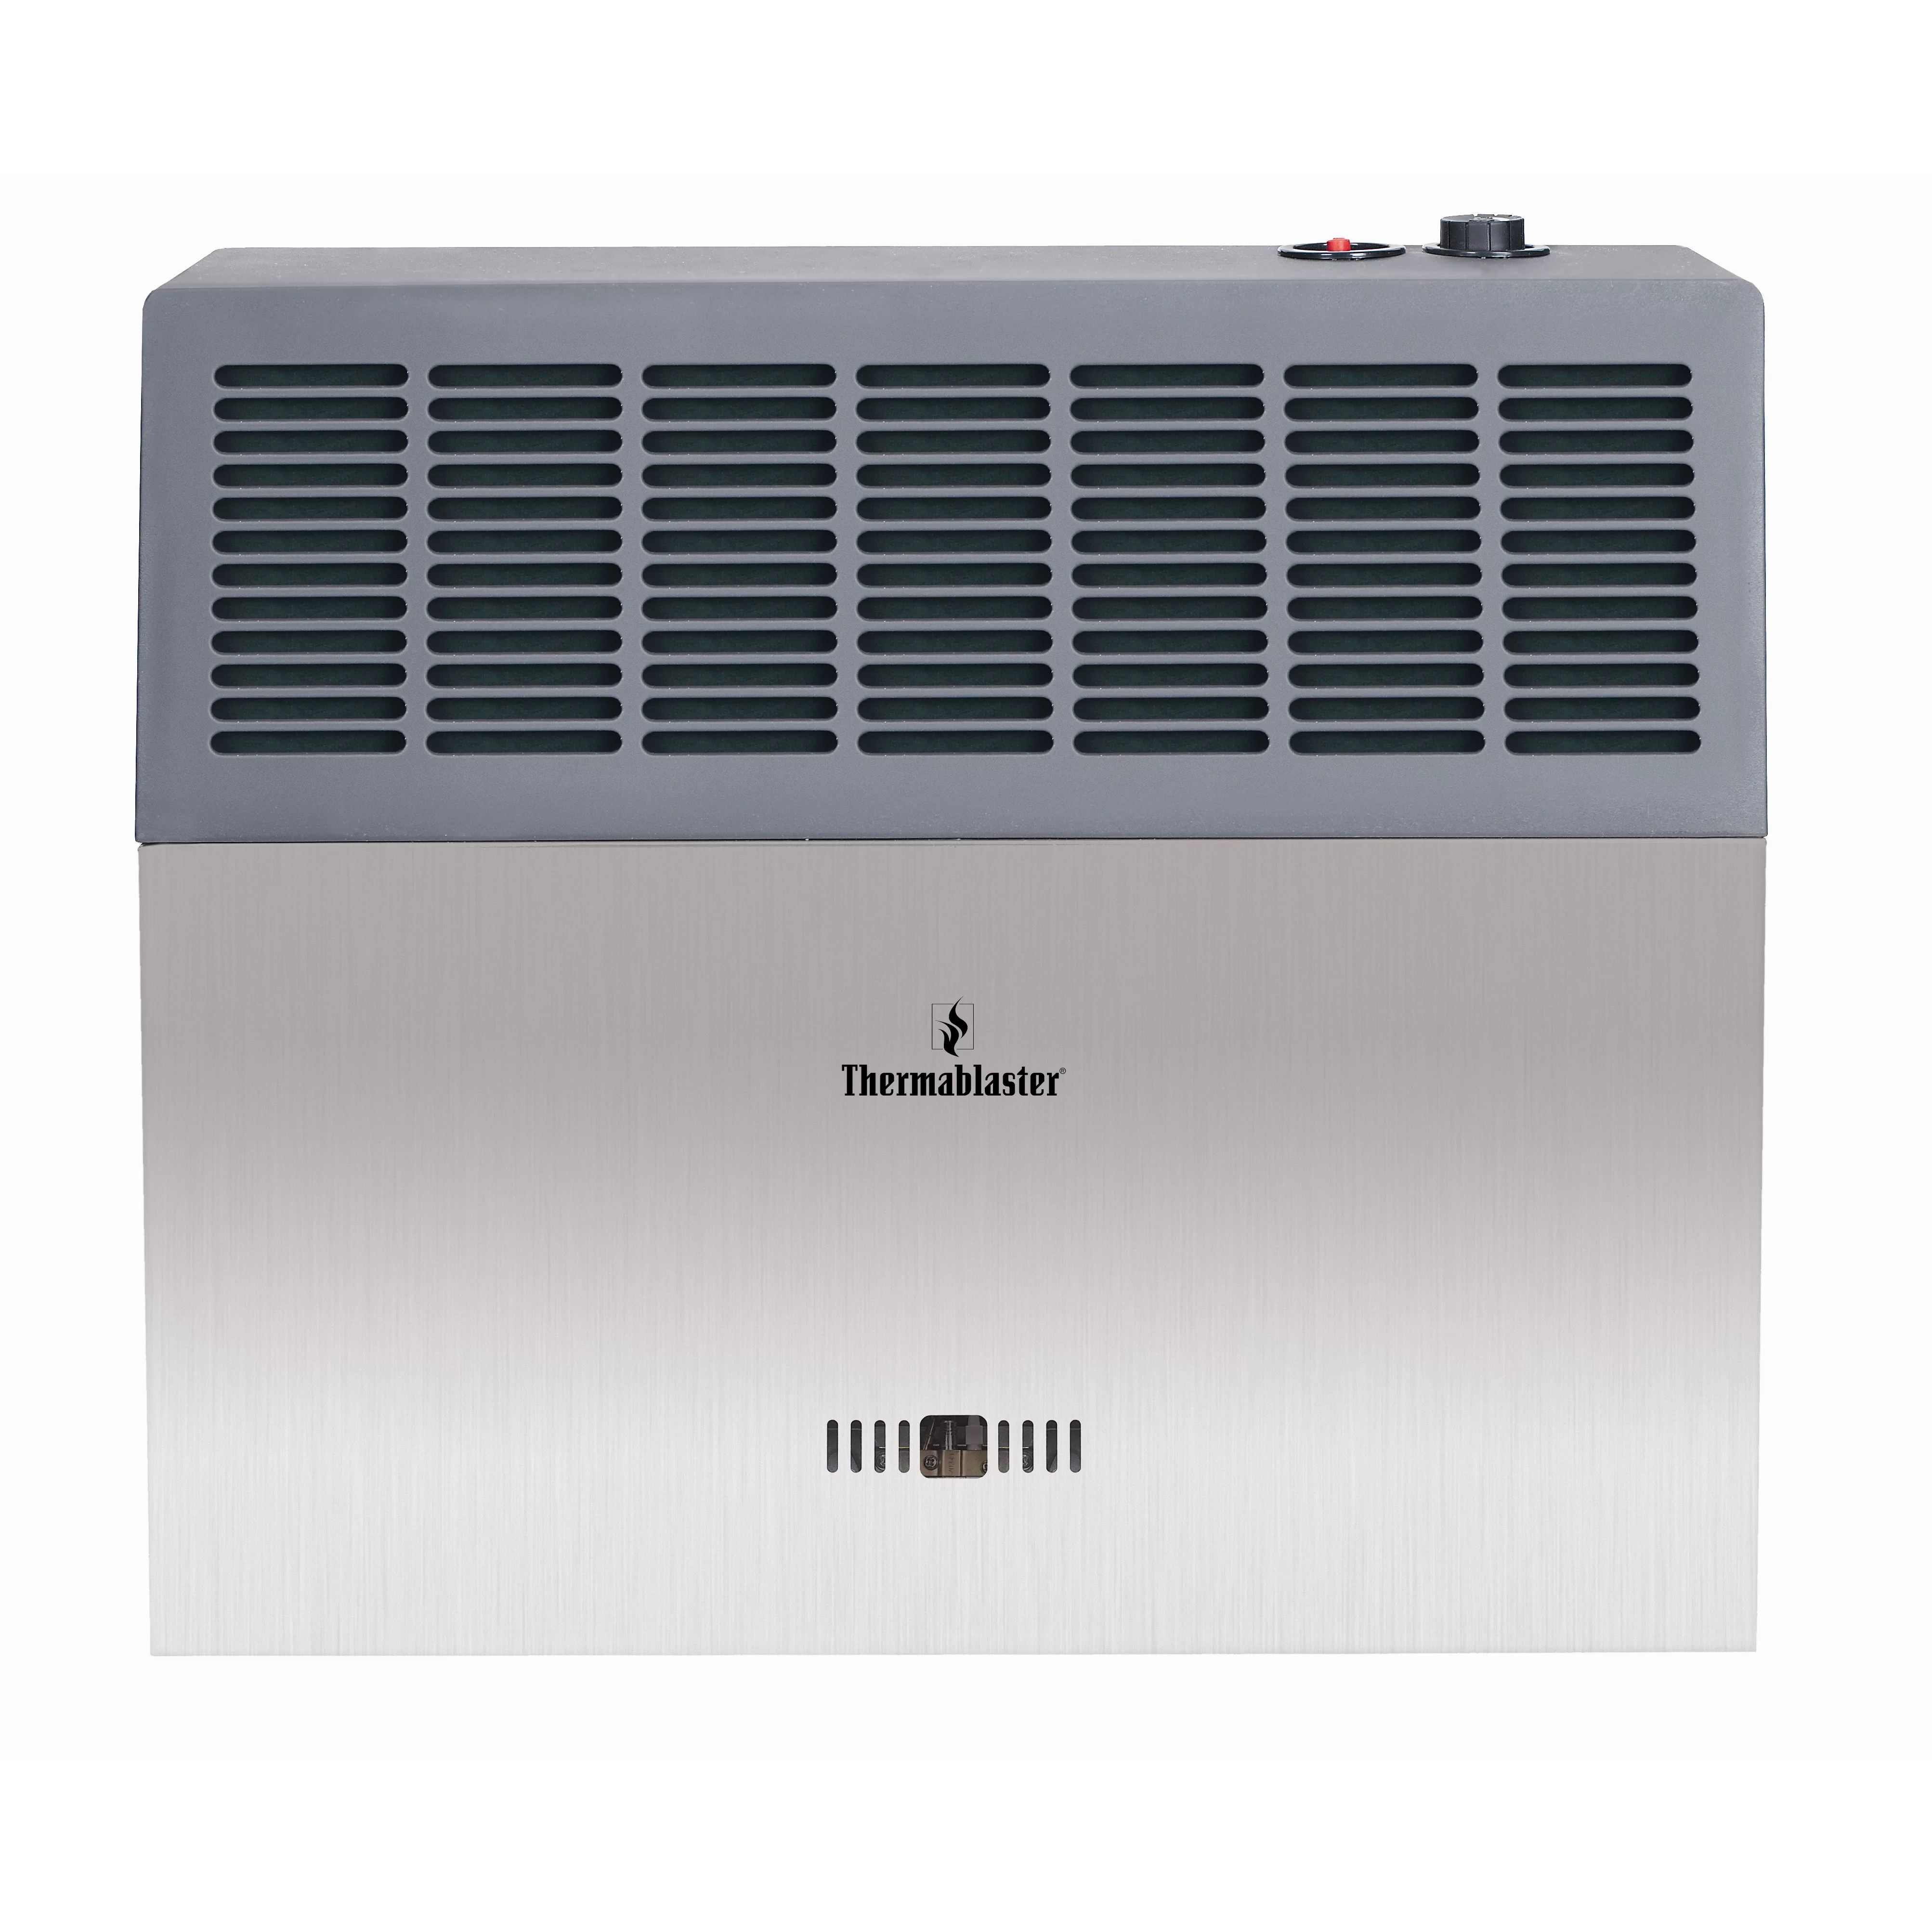 Thermablaster 32000 BTU Propane Vent Free Convection Wall